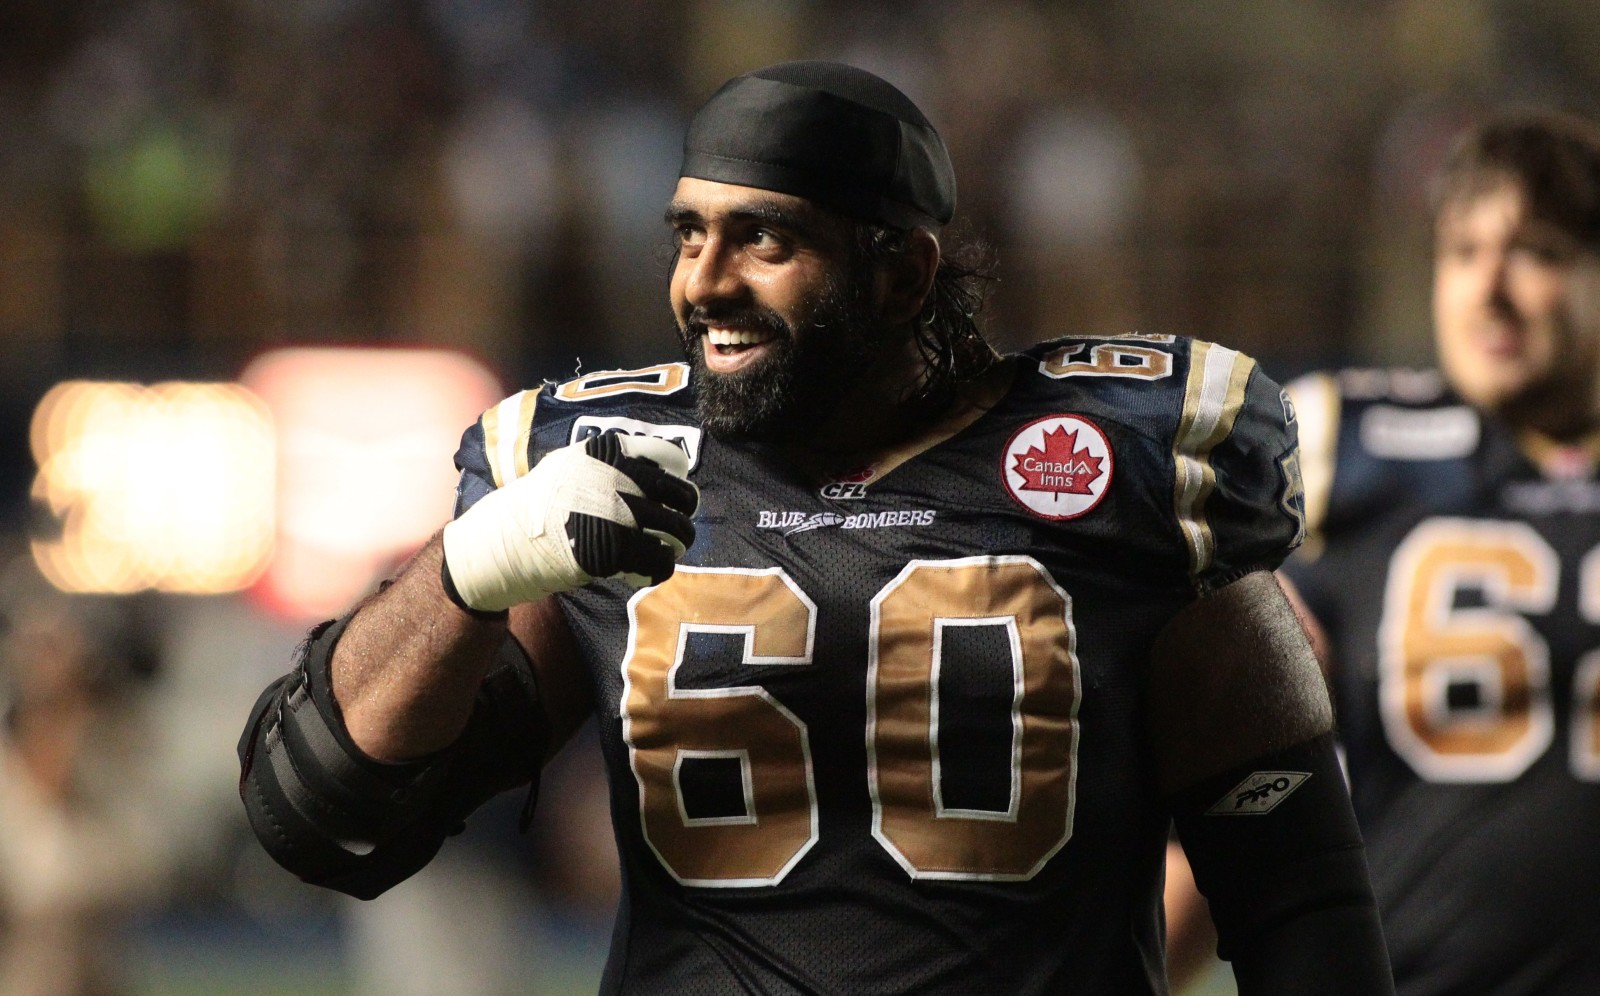 Winnipeg Blue Bombers' Ibrahim Khan (60) smiles to the crowd as he leaves the field after the Winnipeg Blue Bombers 25-20 win over the BC Lions afer fourth quarter CFL action on in Winnipeg on Thursday,  July 28, 2011.  (CFL PHOTO - MARIANNE HELM)